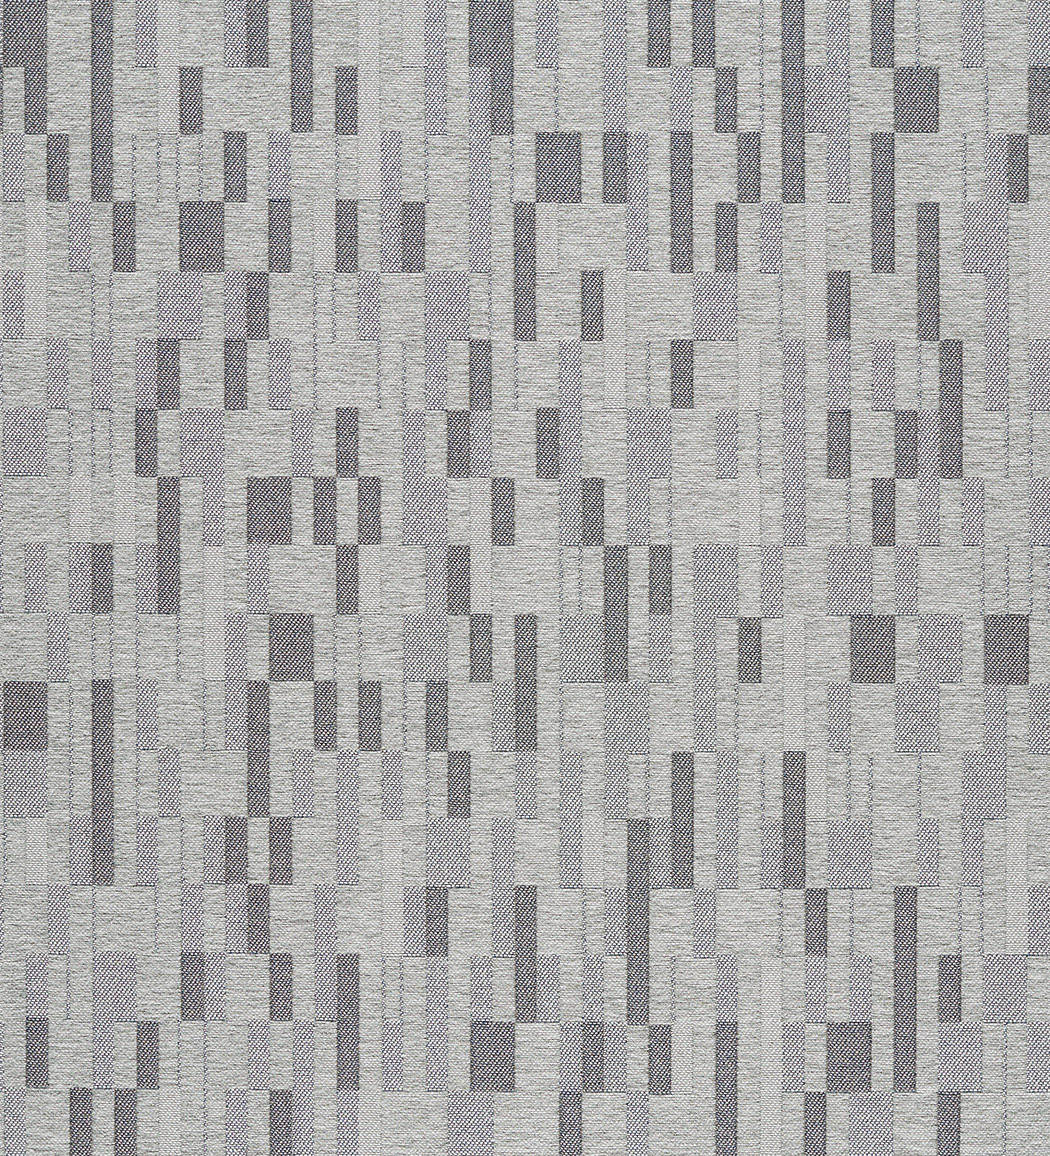 Modulus - Shadow Play - 4057 - 08 - Half Yard Tileable Swatches